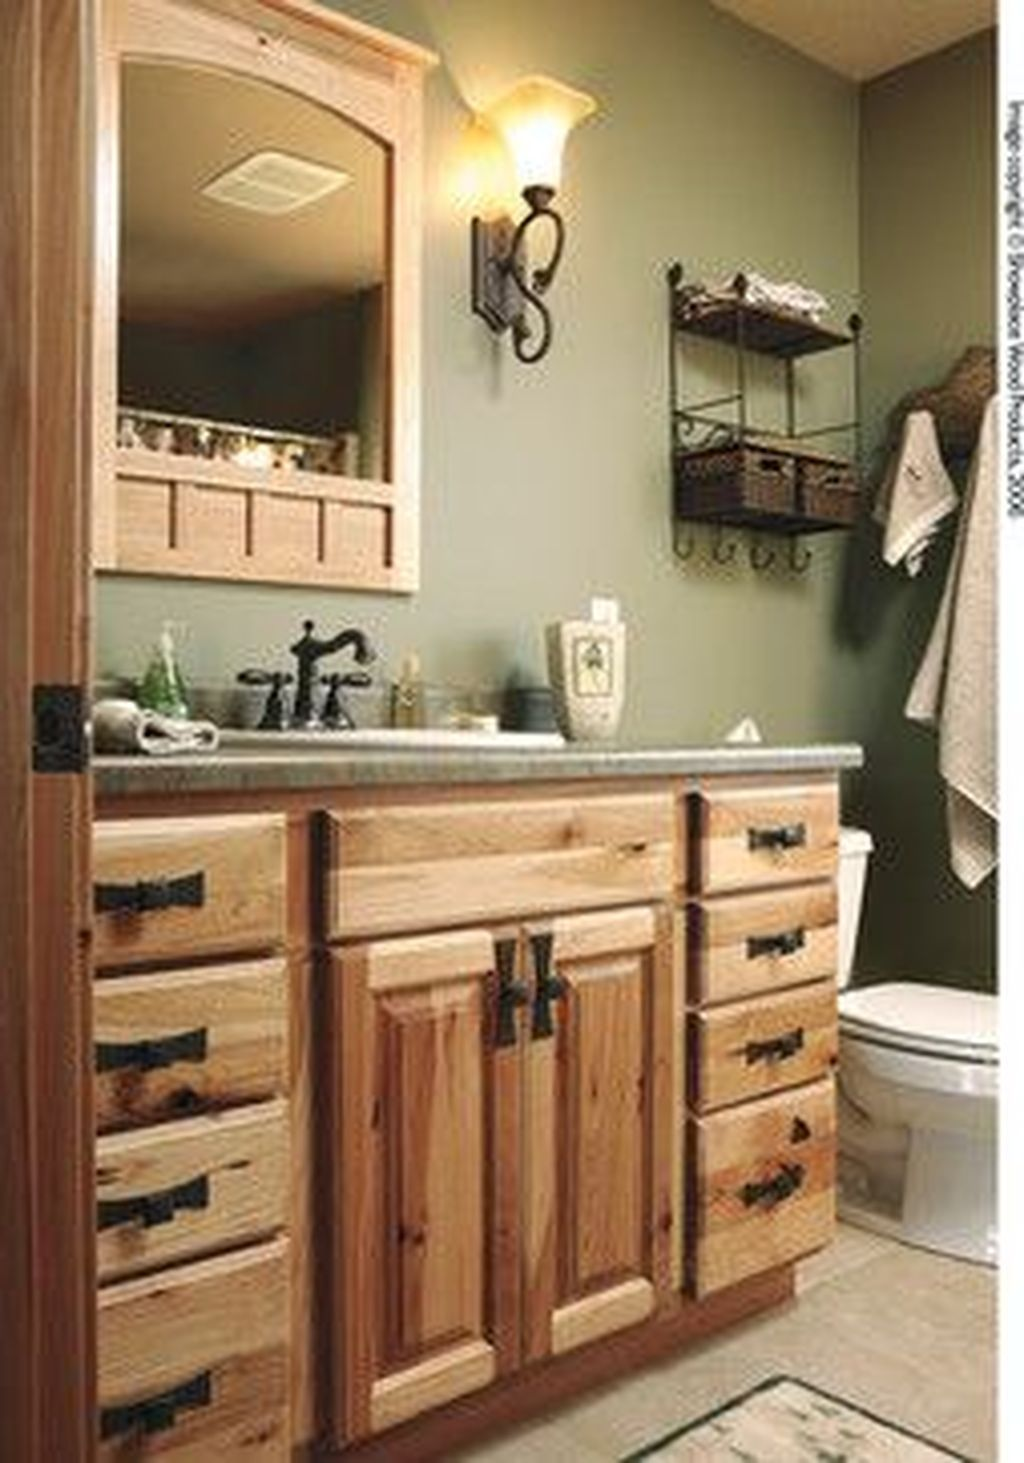 Cool 46 Incredible Bathroom Cabinet Paint Color Ideas More At Https Homystyle Com 2018 10 09 4 Green Bathroom Kitchen Cabinets In Bathroom Bathrooms Remodel